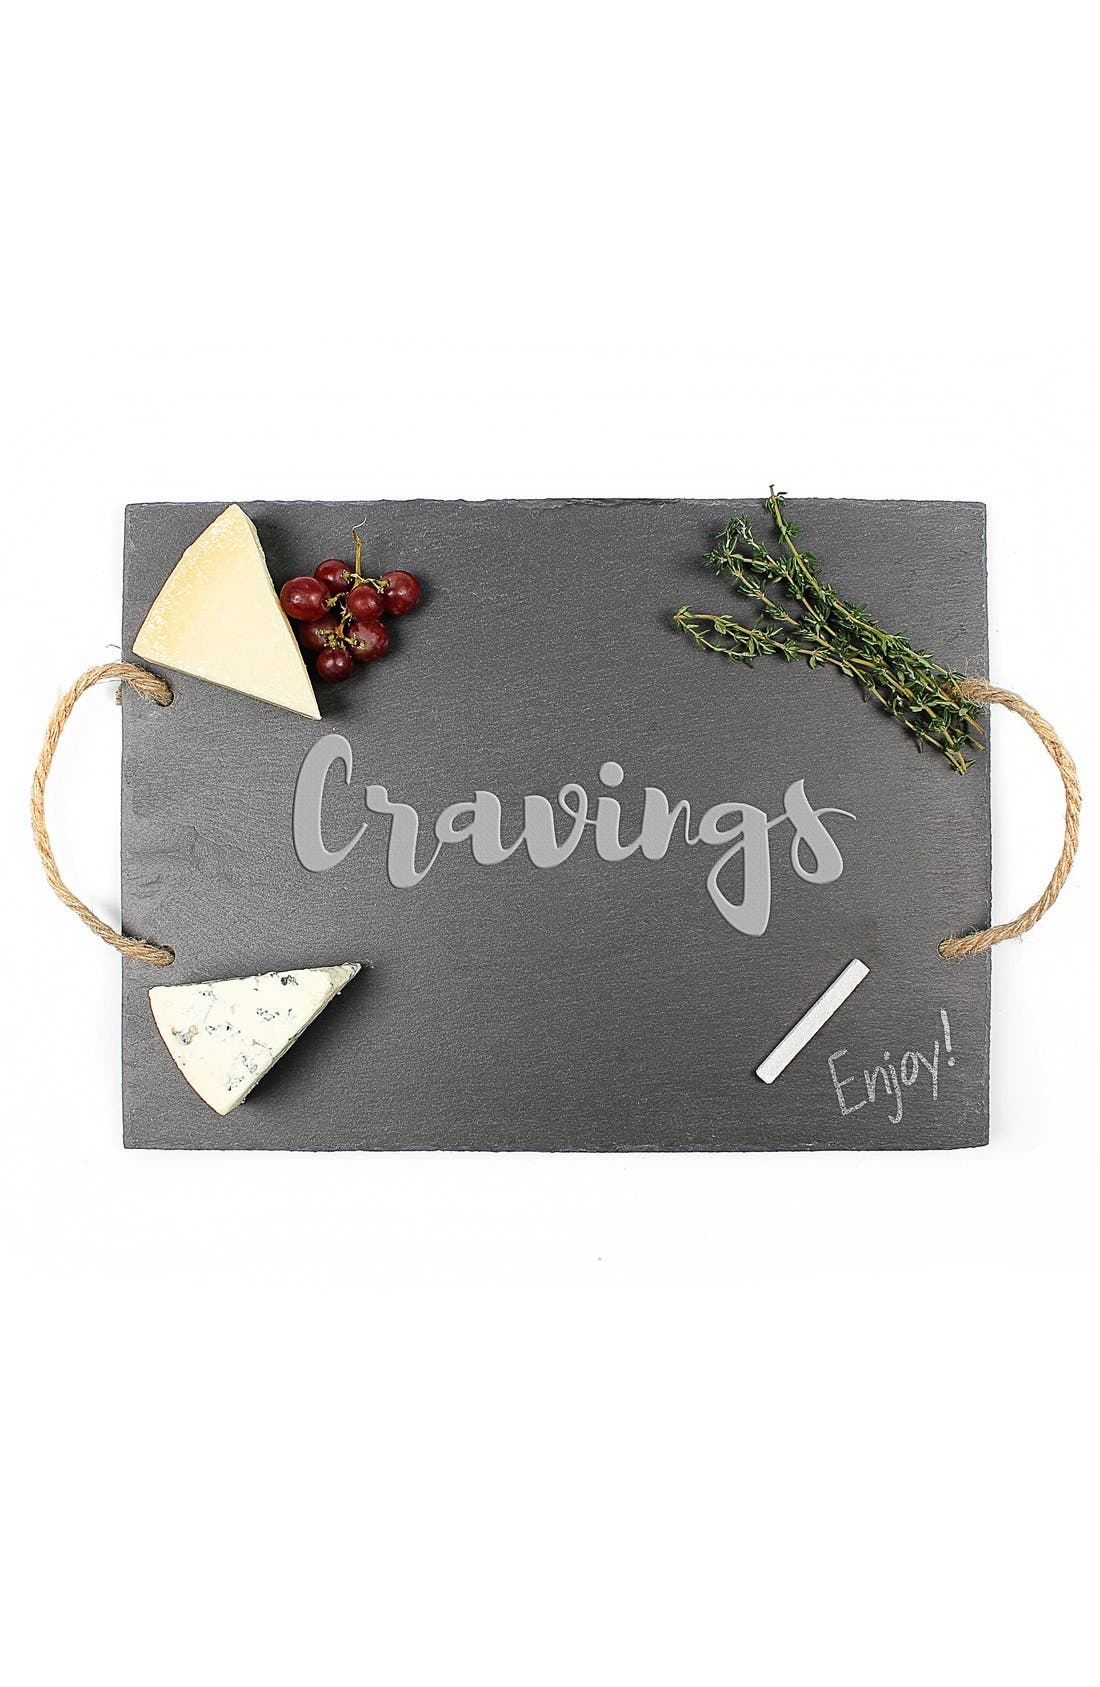 Main Image - Cathy's Concepts 'Cravings' Slate Serving Board